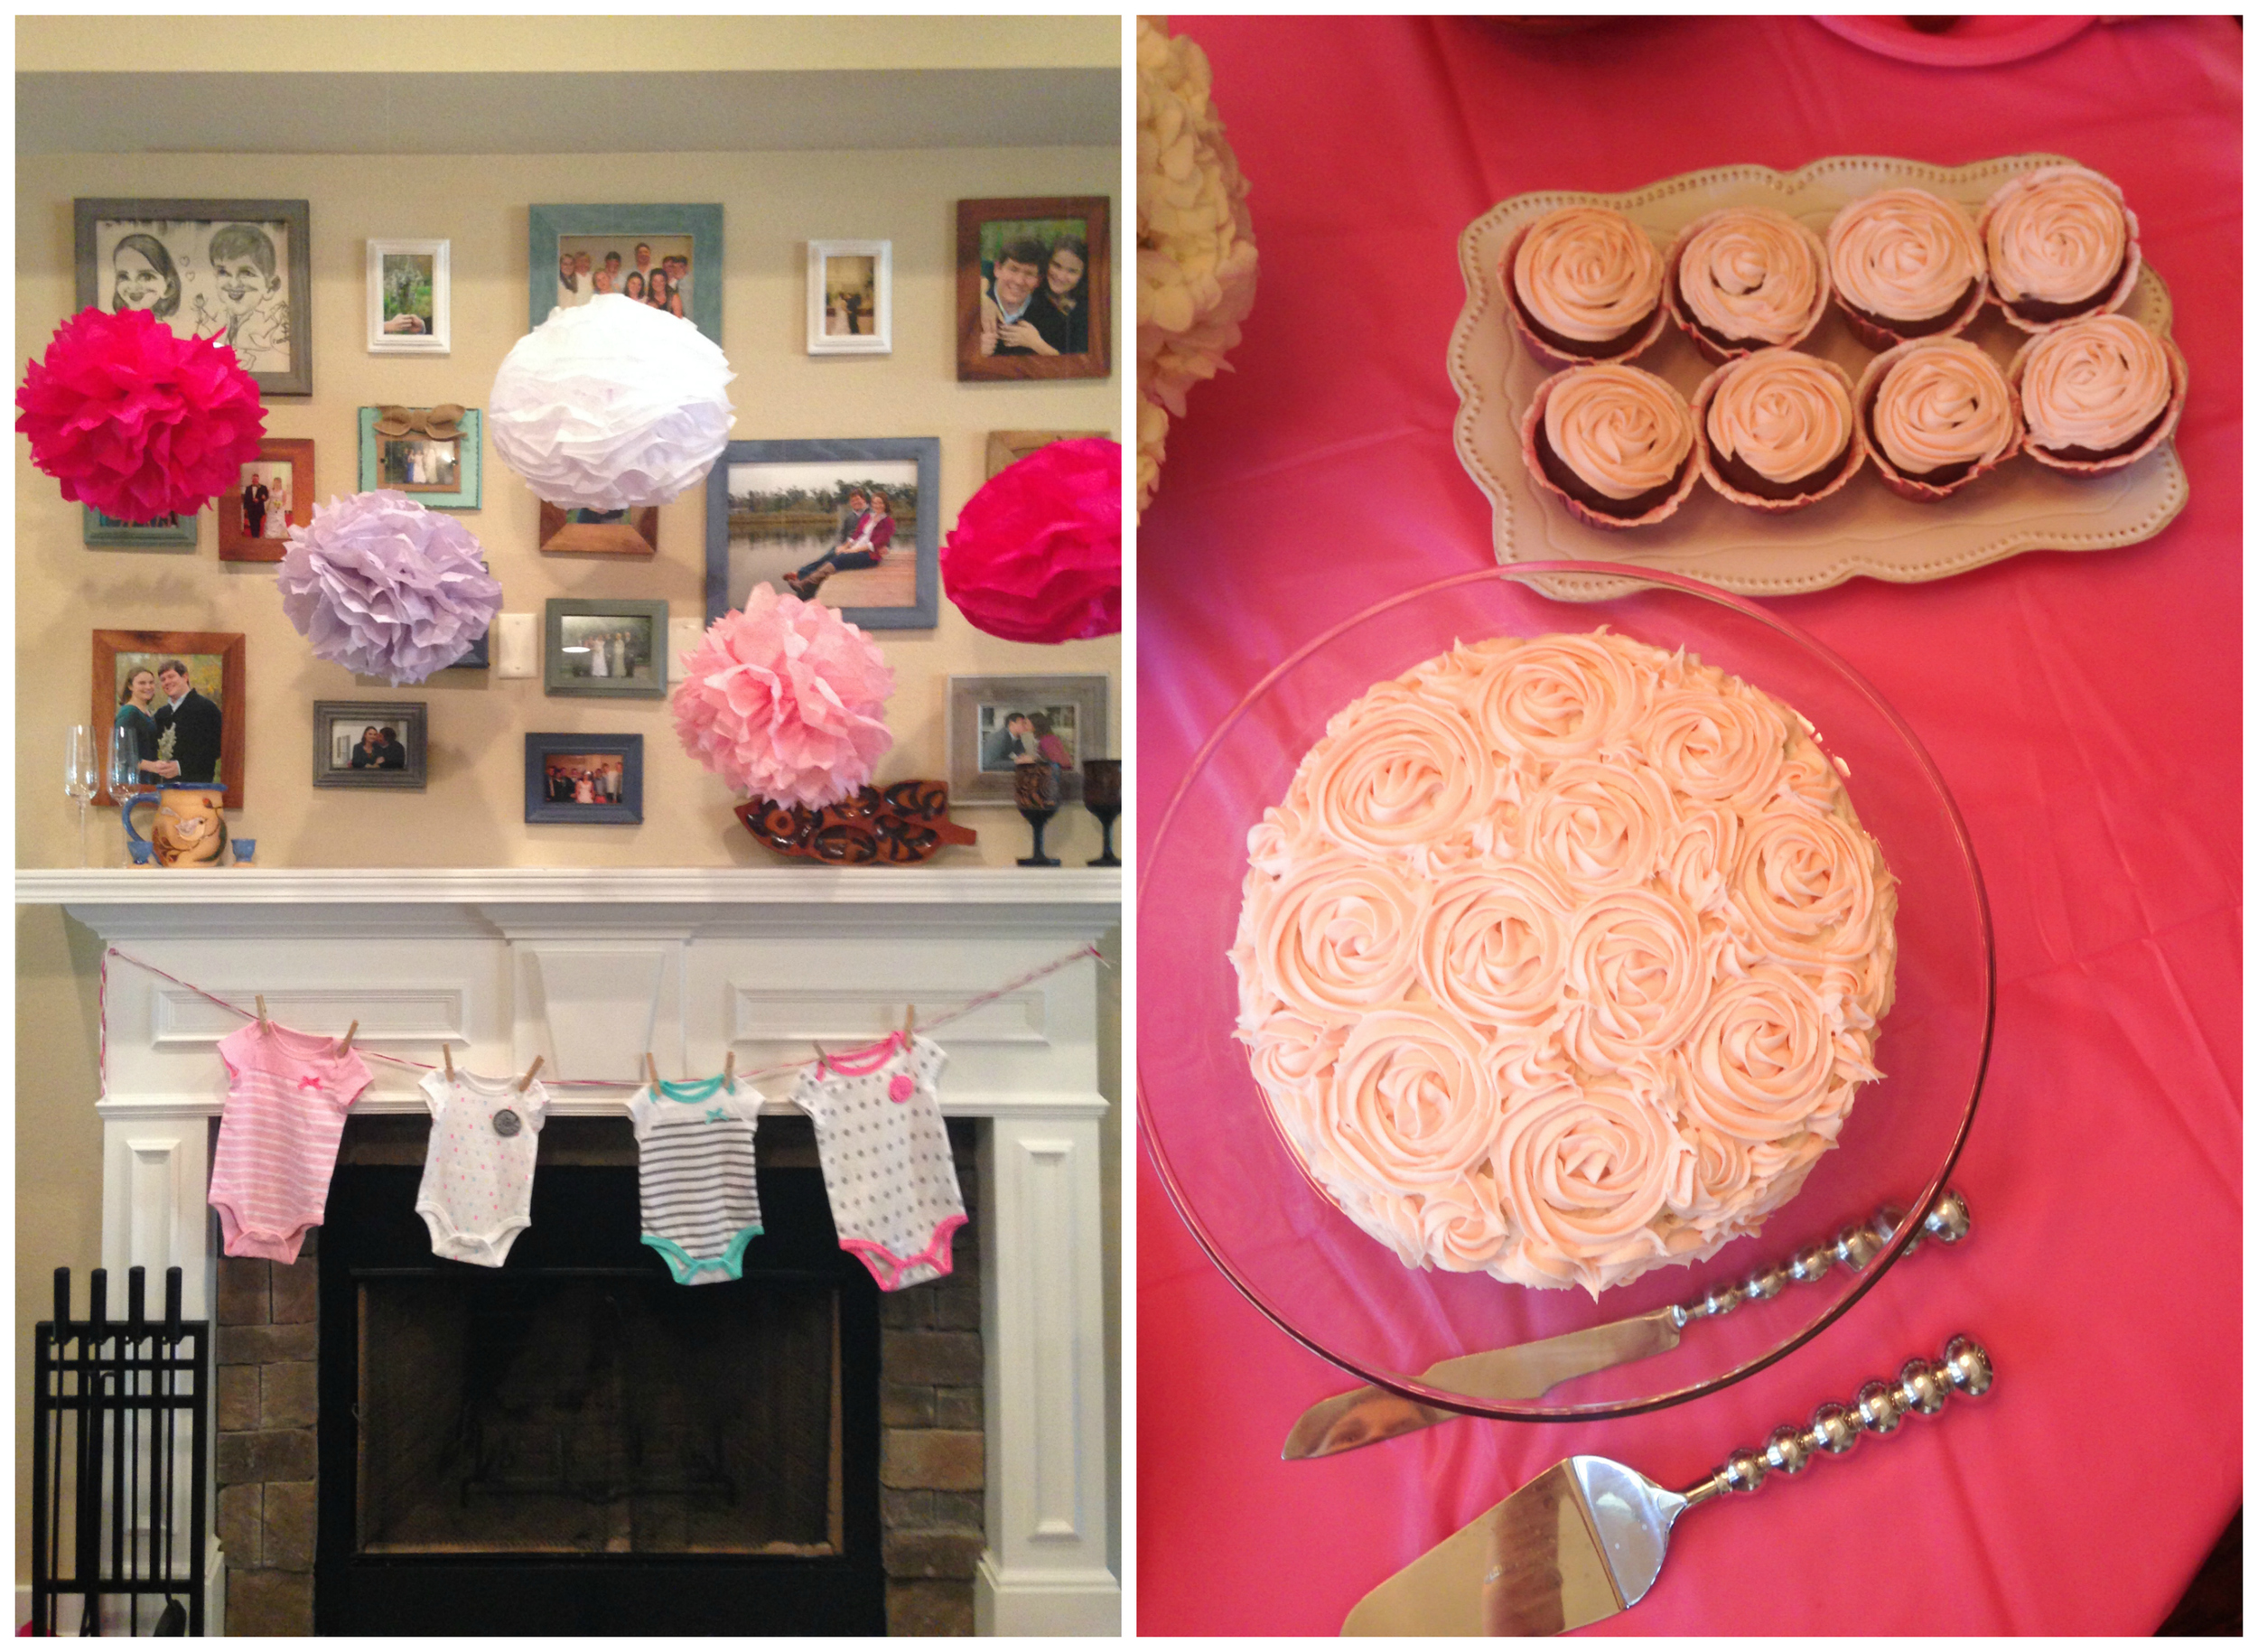 pink baby shower cake and decor (girl)